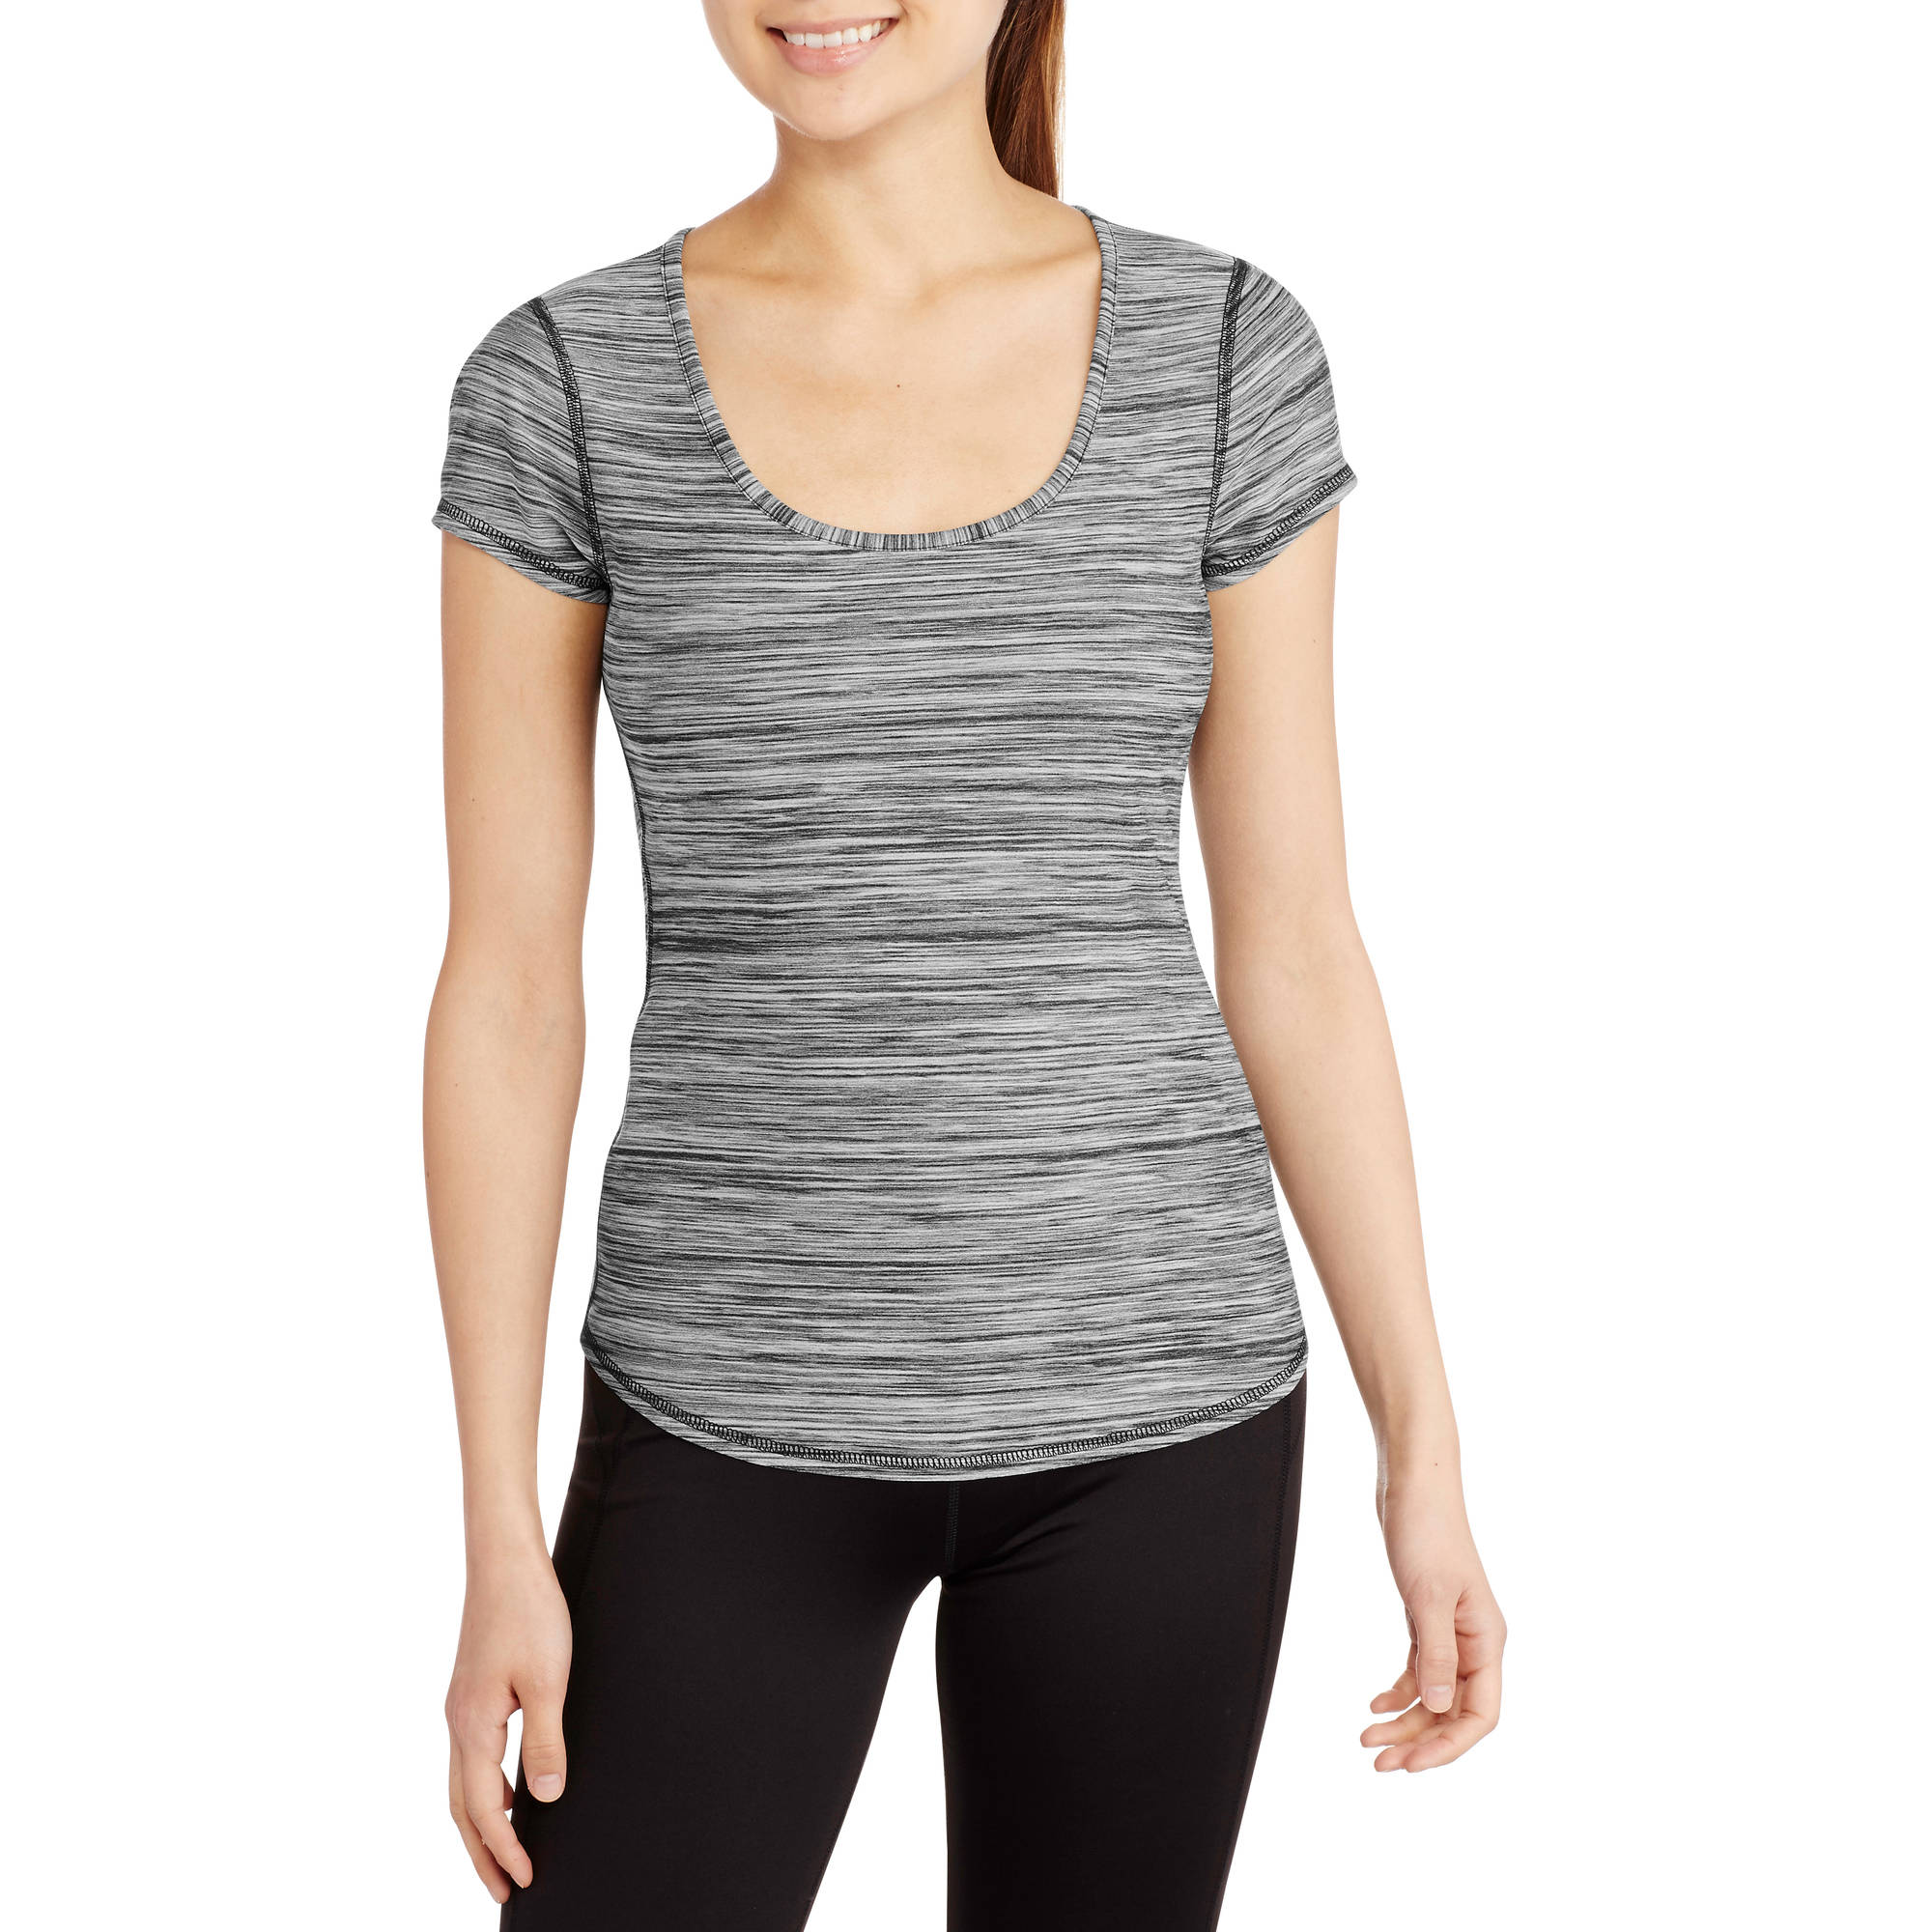 Juniors' Dri-More Scoop Neck Melange Tee